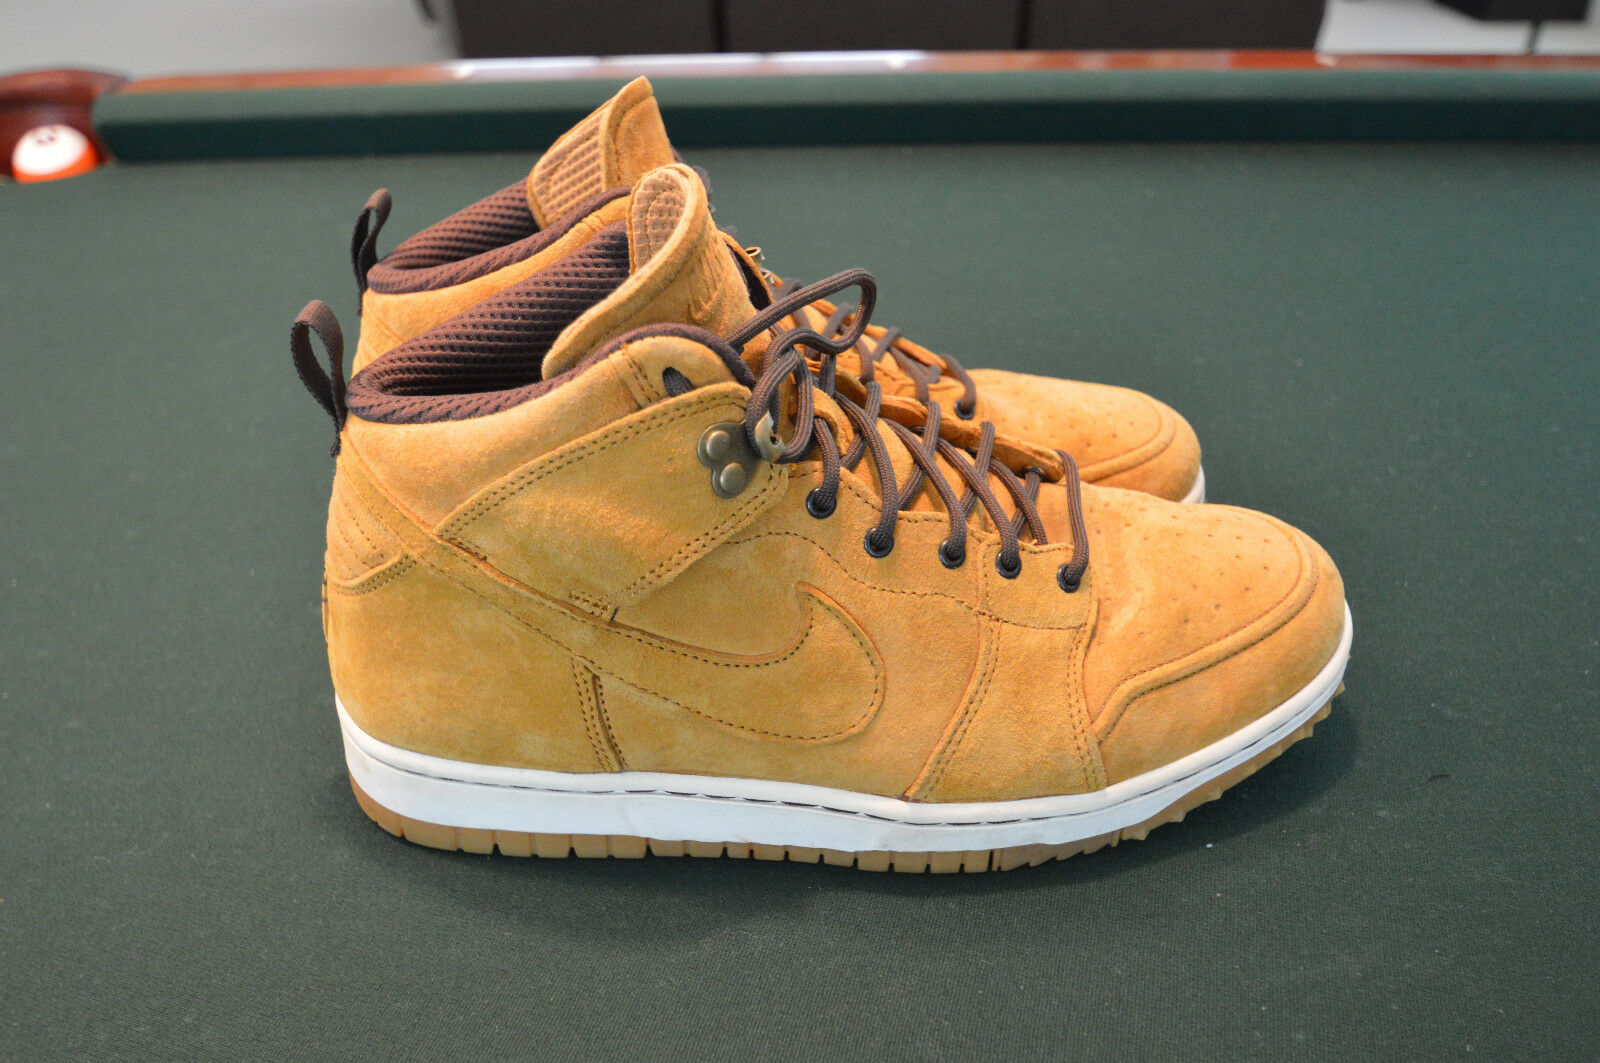 Nike Men's High Dunk sneakers size 10. Lightly worn tan suede tops.